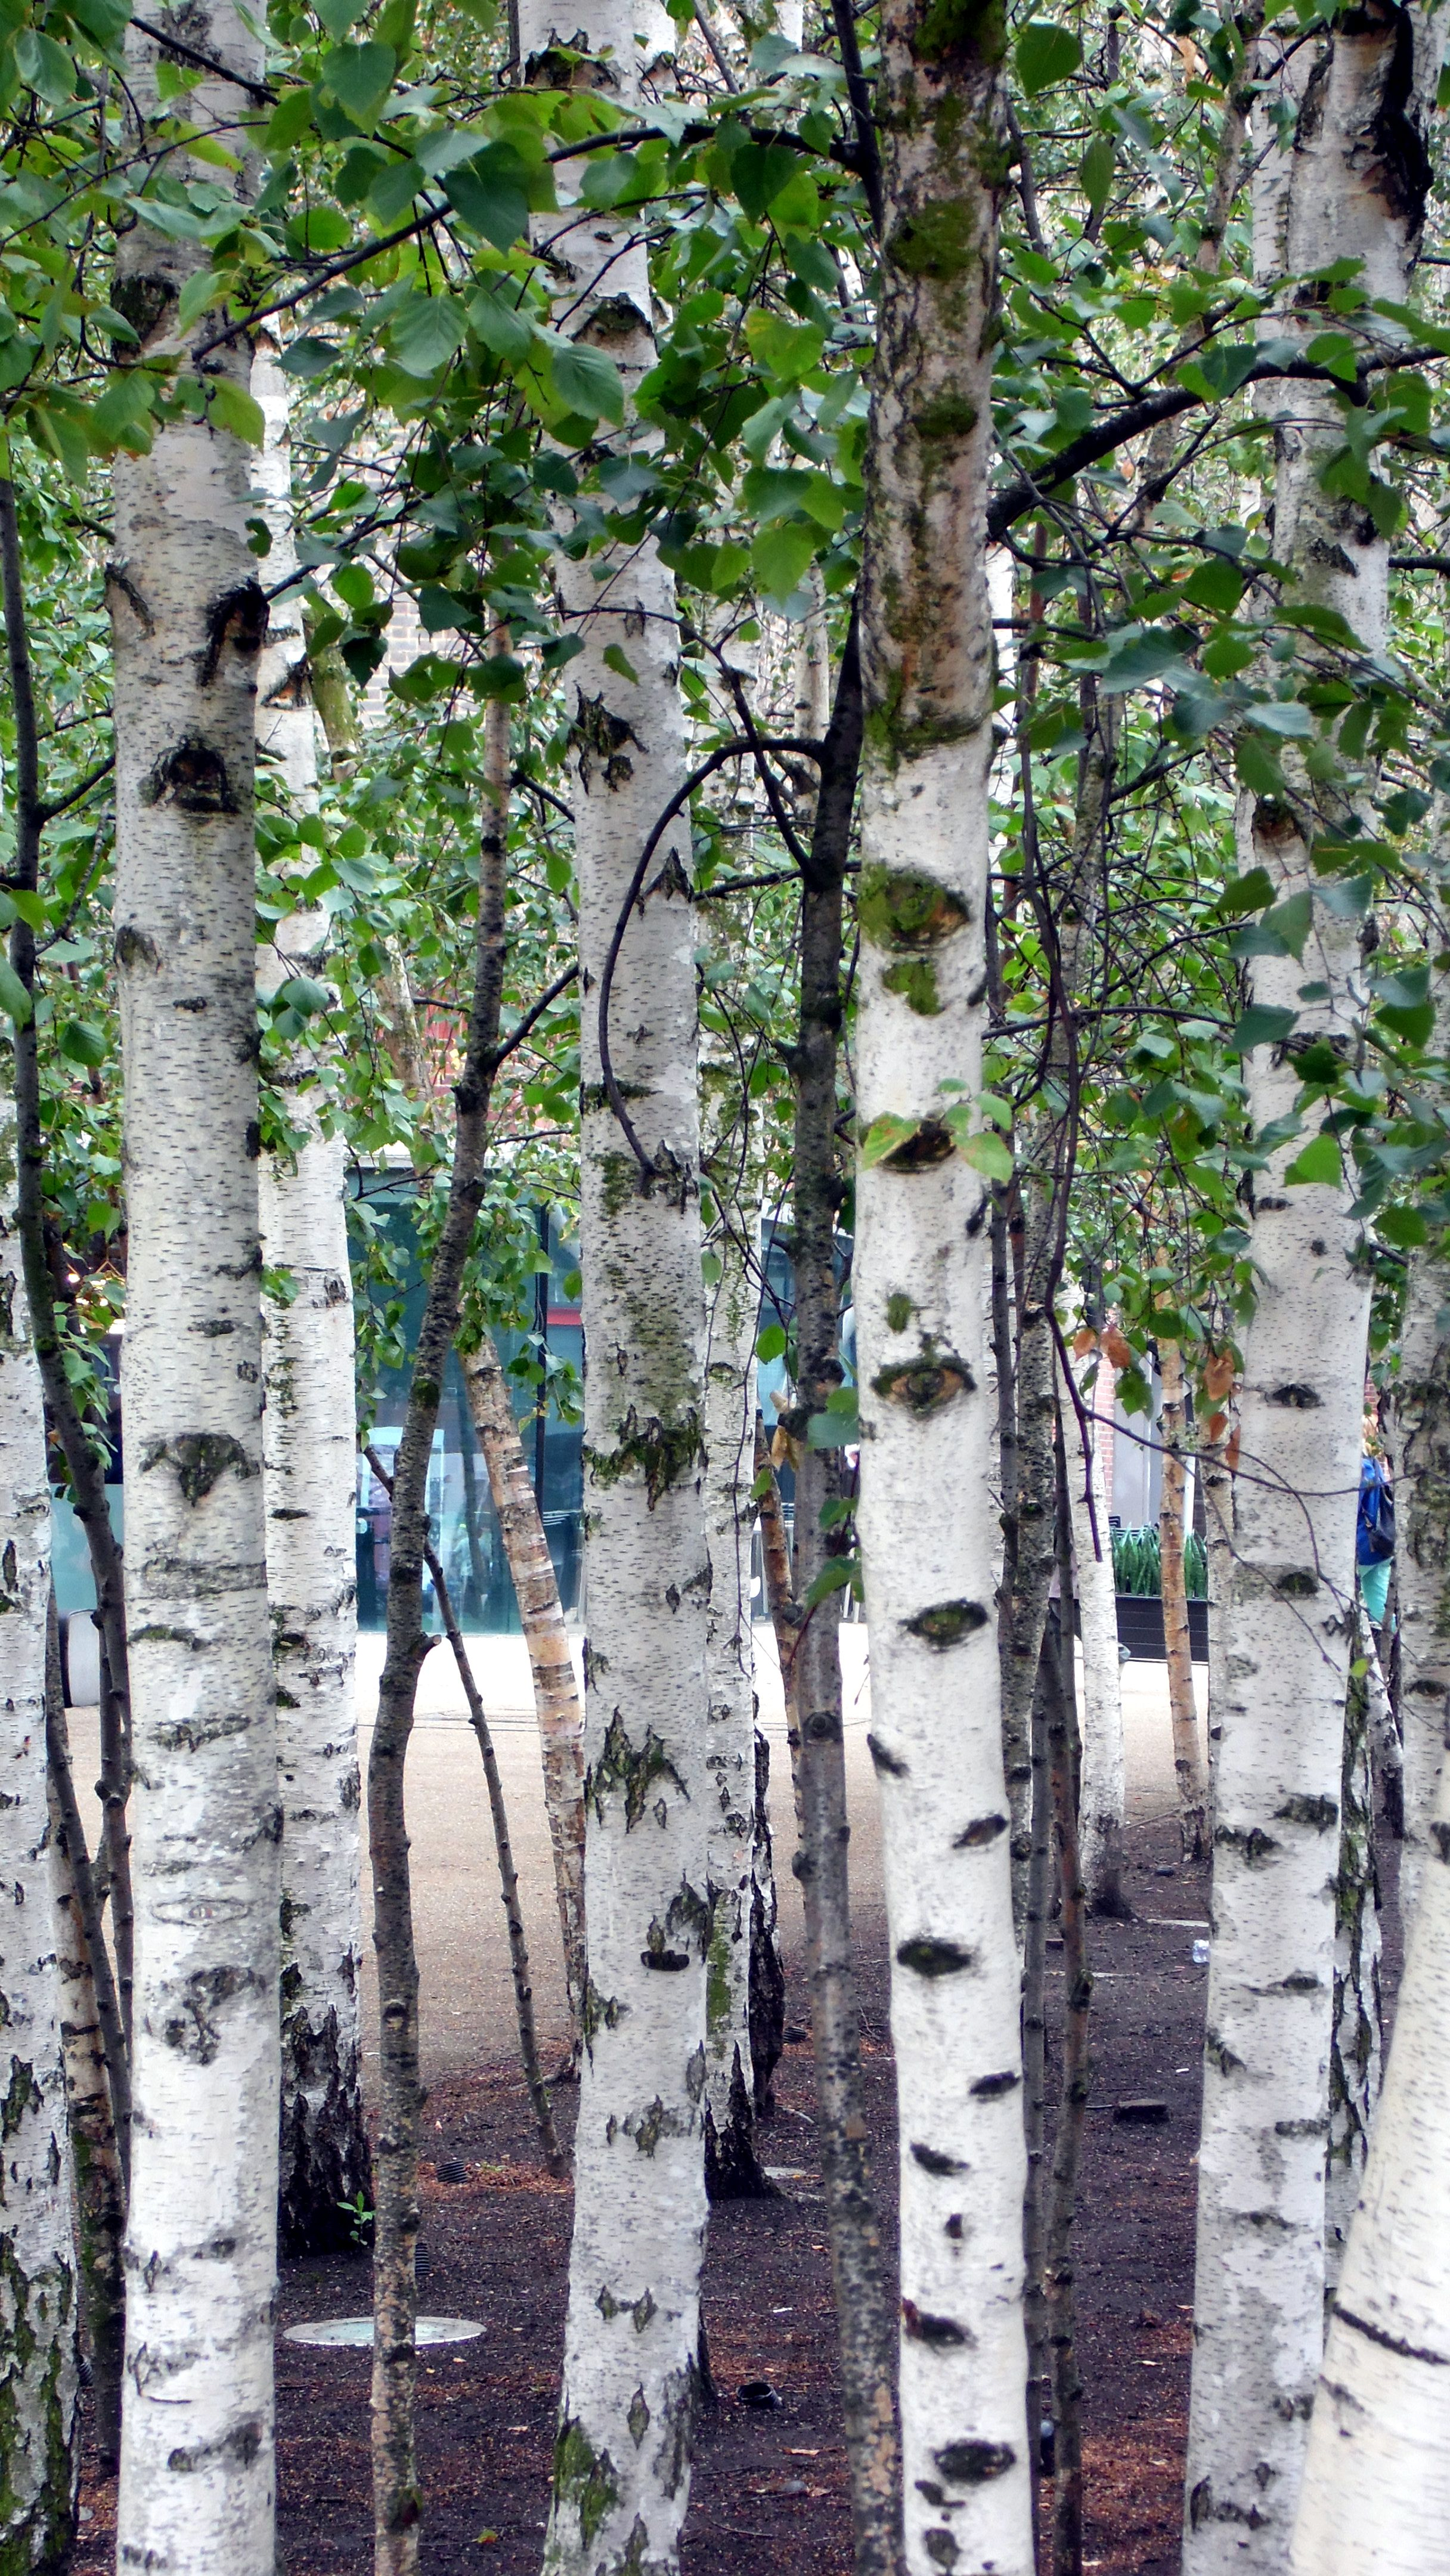 Traci S Travels Stand Of Silver Beech Trees Outside The Tate Modern Gallery London August 2017 They Remind Me Cottonwood In Alaska